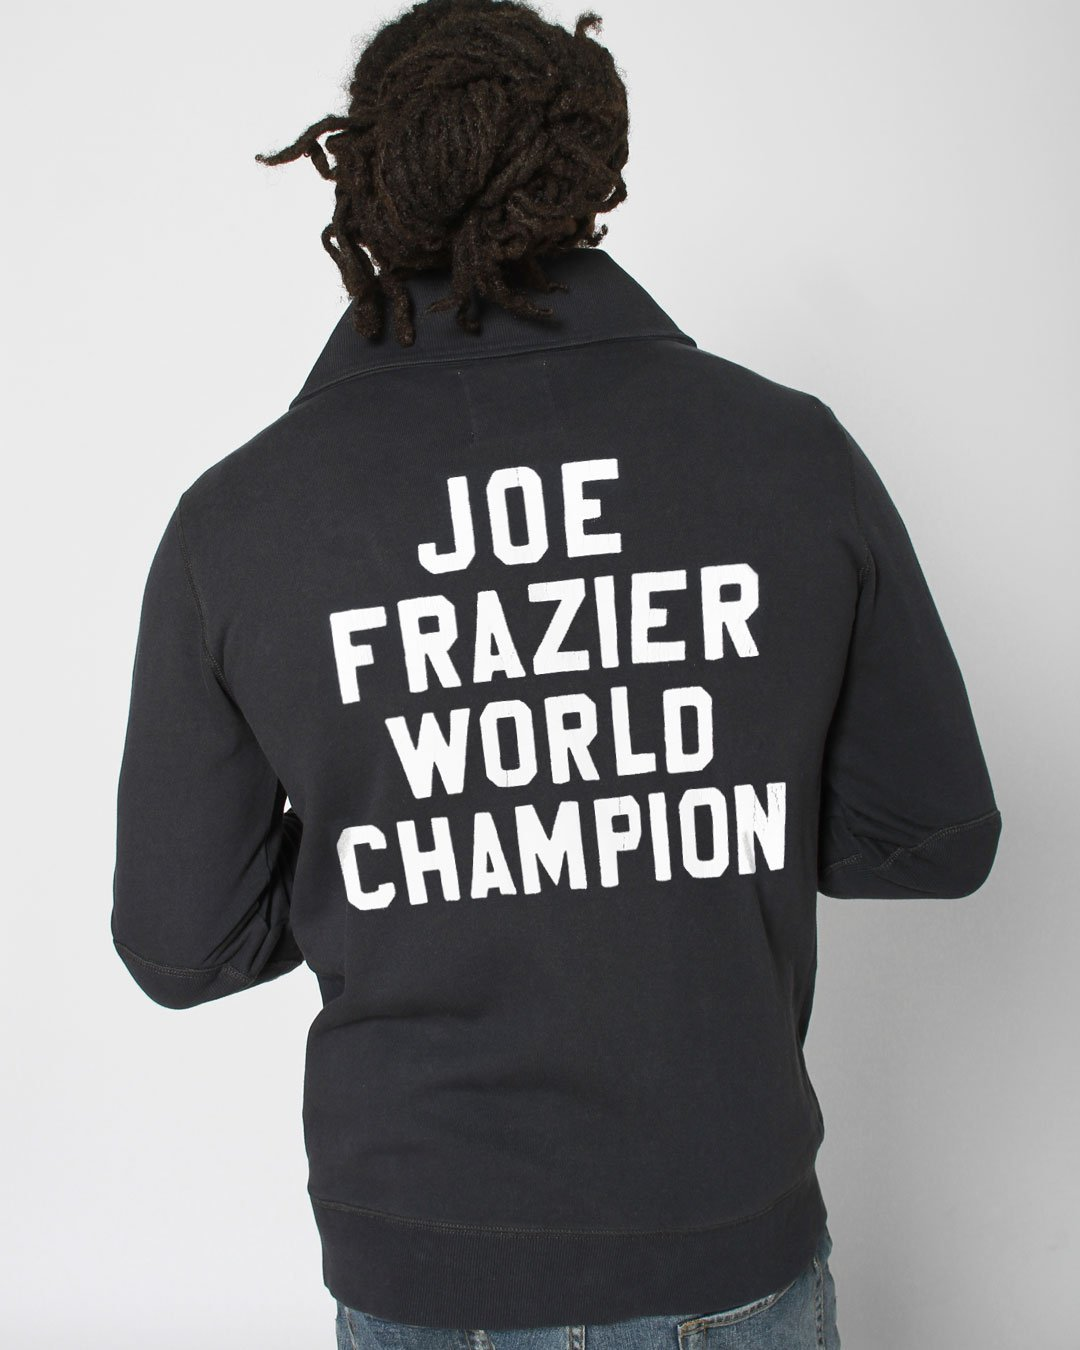 Frazier Heavyweight Champ Cardigan - Roots of Inc dba Roots of Fight